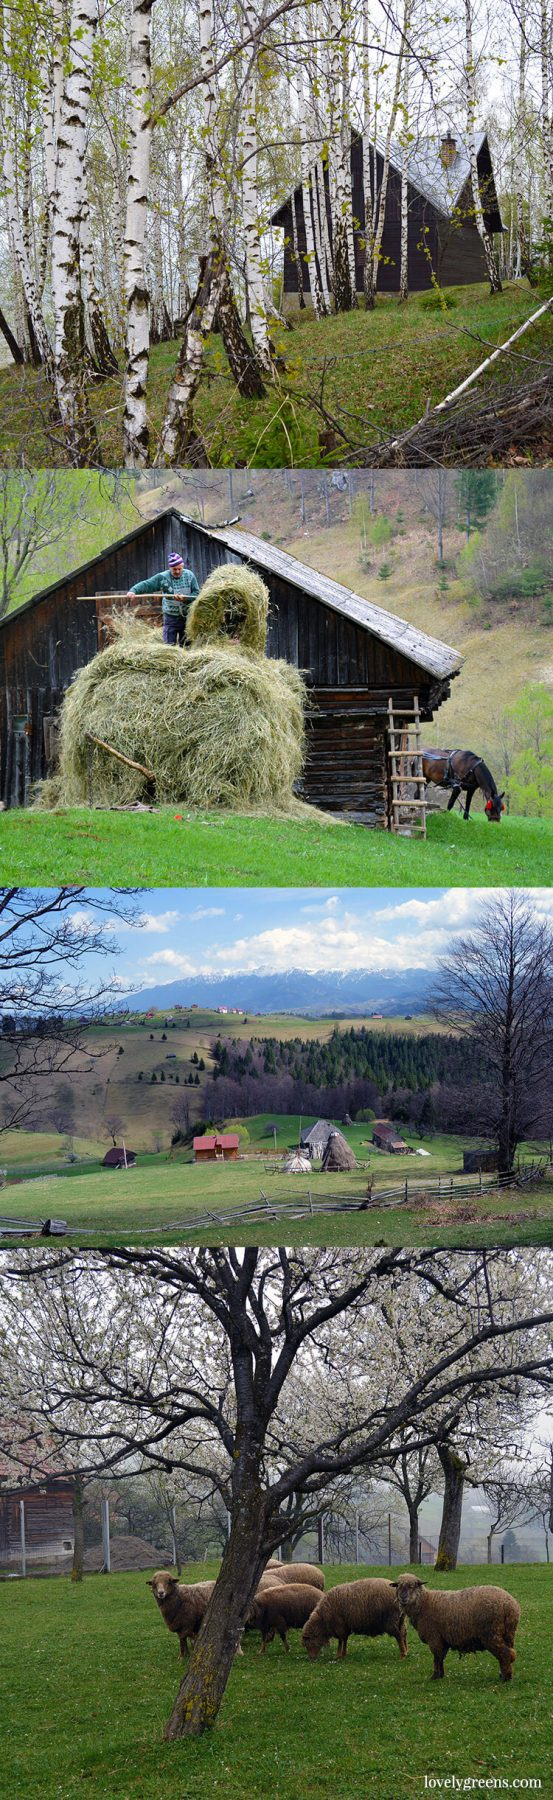 Traditional farming and simple living in the Romanian hills inside the Piatra Craiului national park